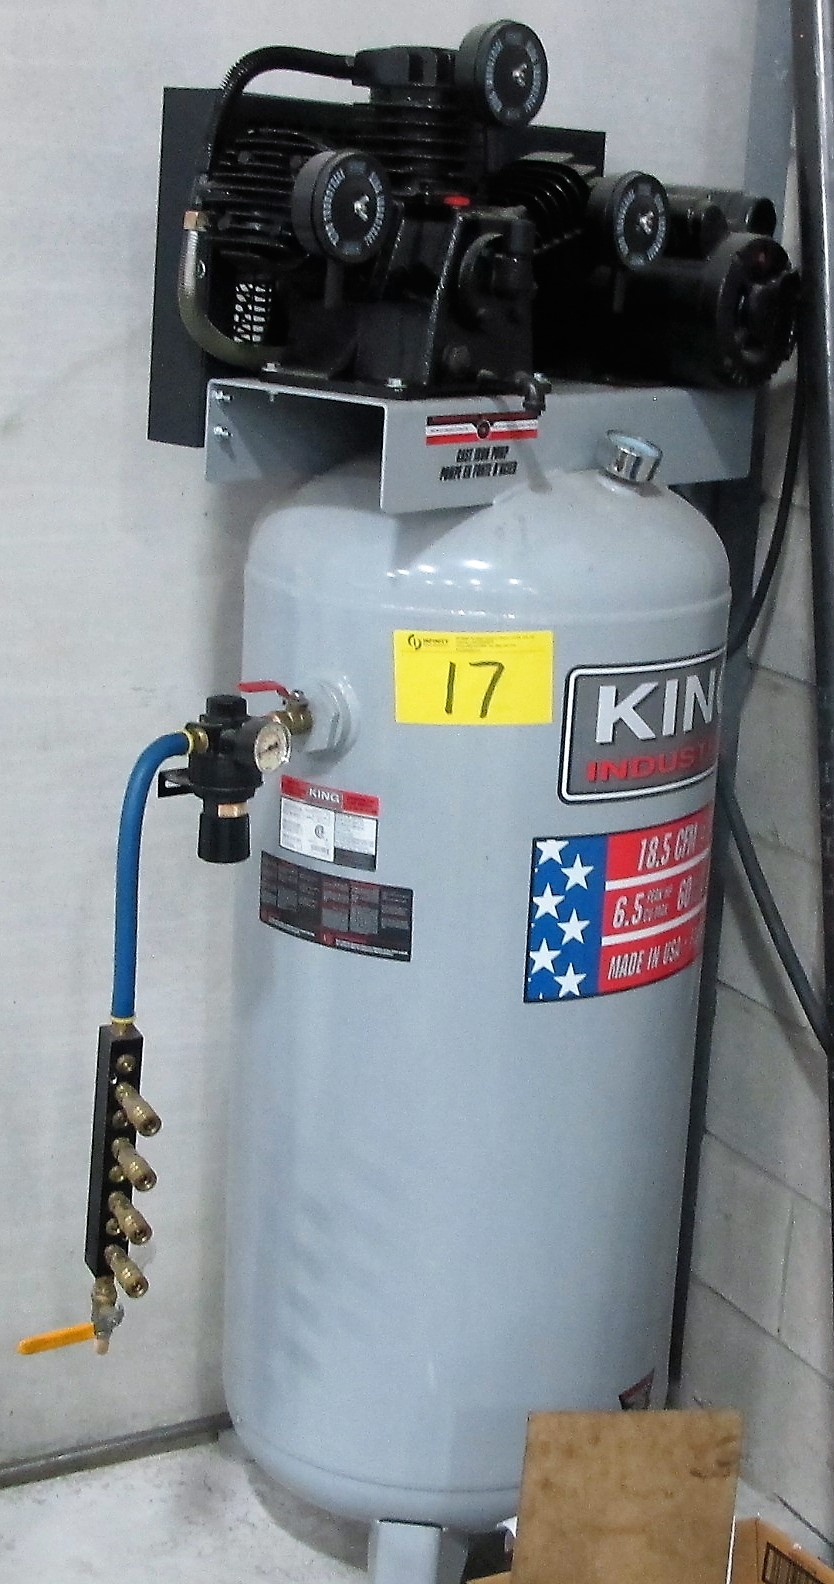 Lot 17 - KING INDUSTRIAL 6.5HP, 60 GALLON TANK TYPE COMPRESSOR